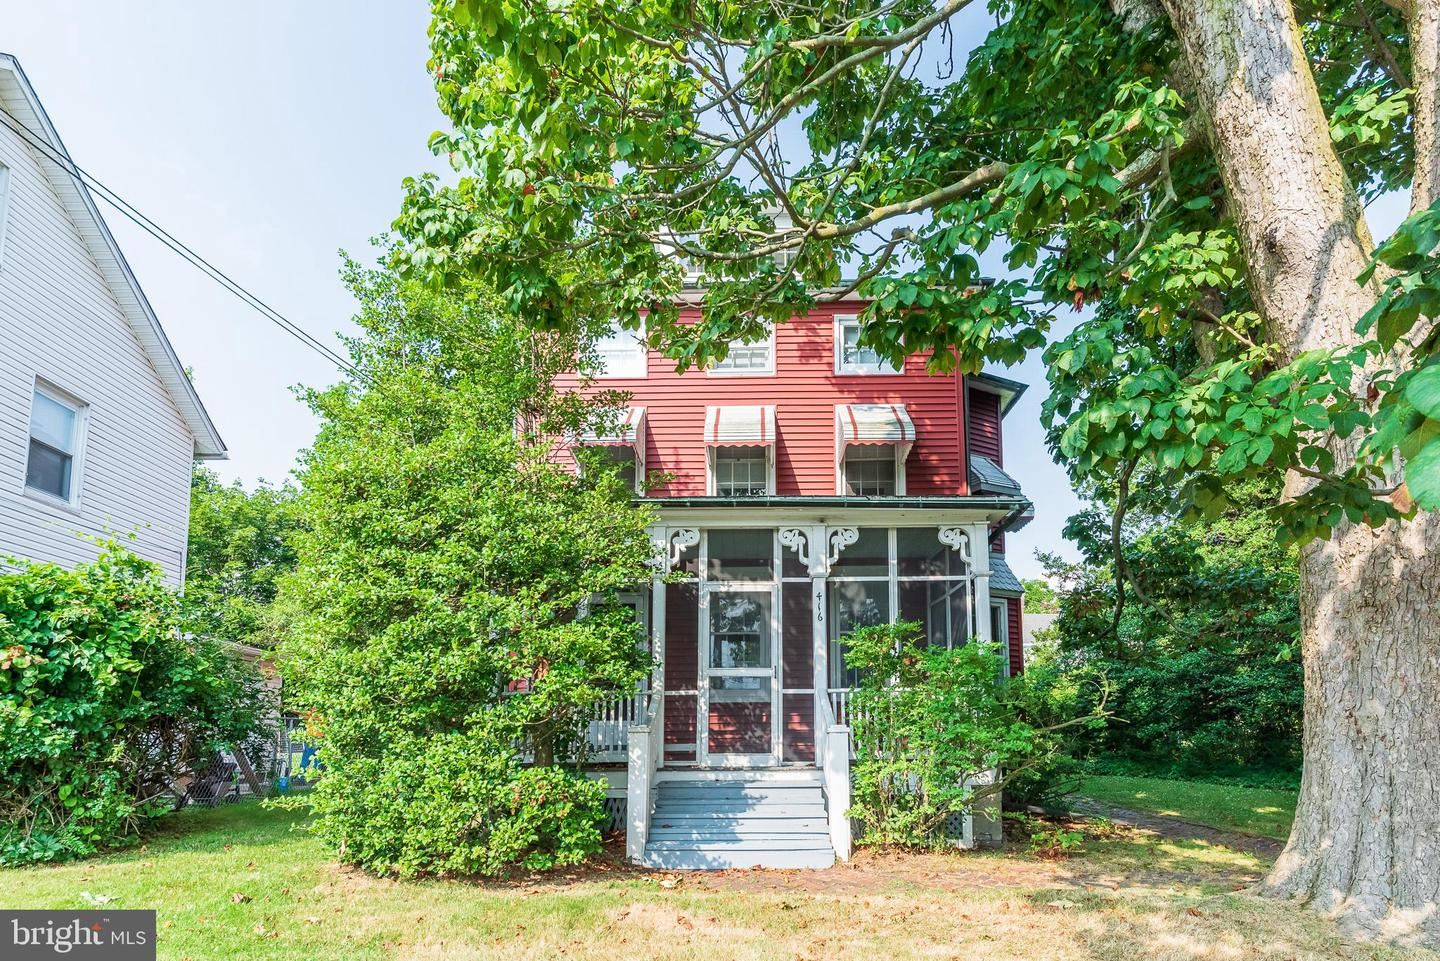 Photo of 416 FRONT ST, PERRYVILLE, MD 21903 (MLS # MDCC169980)